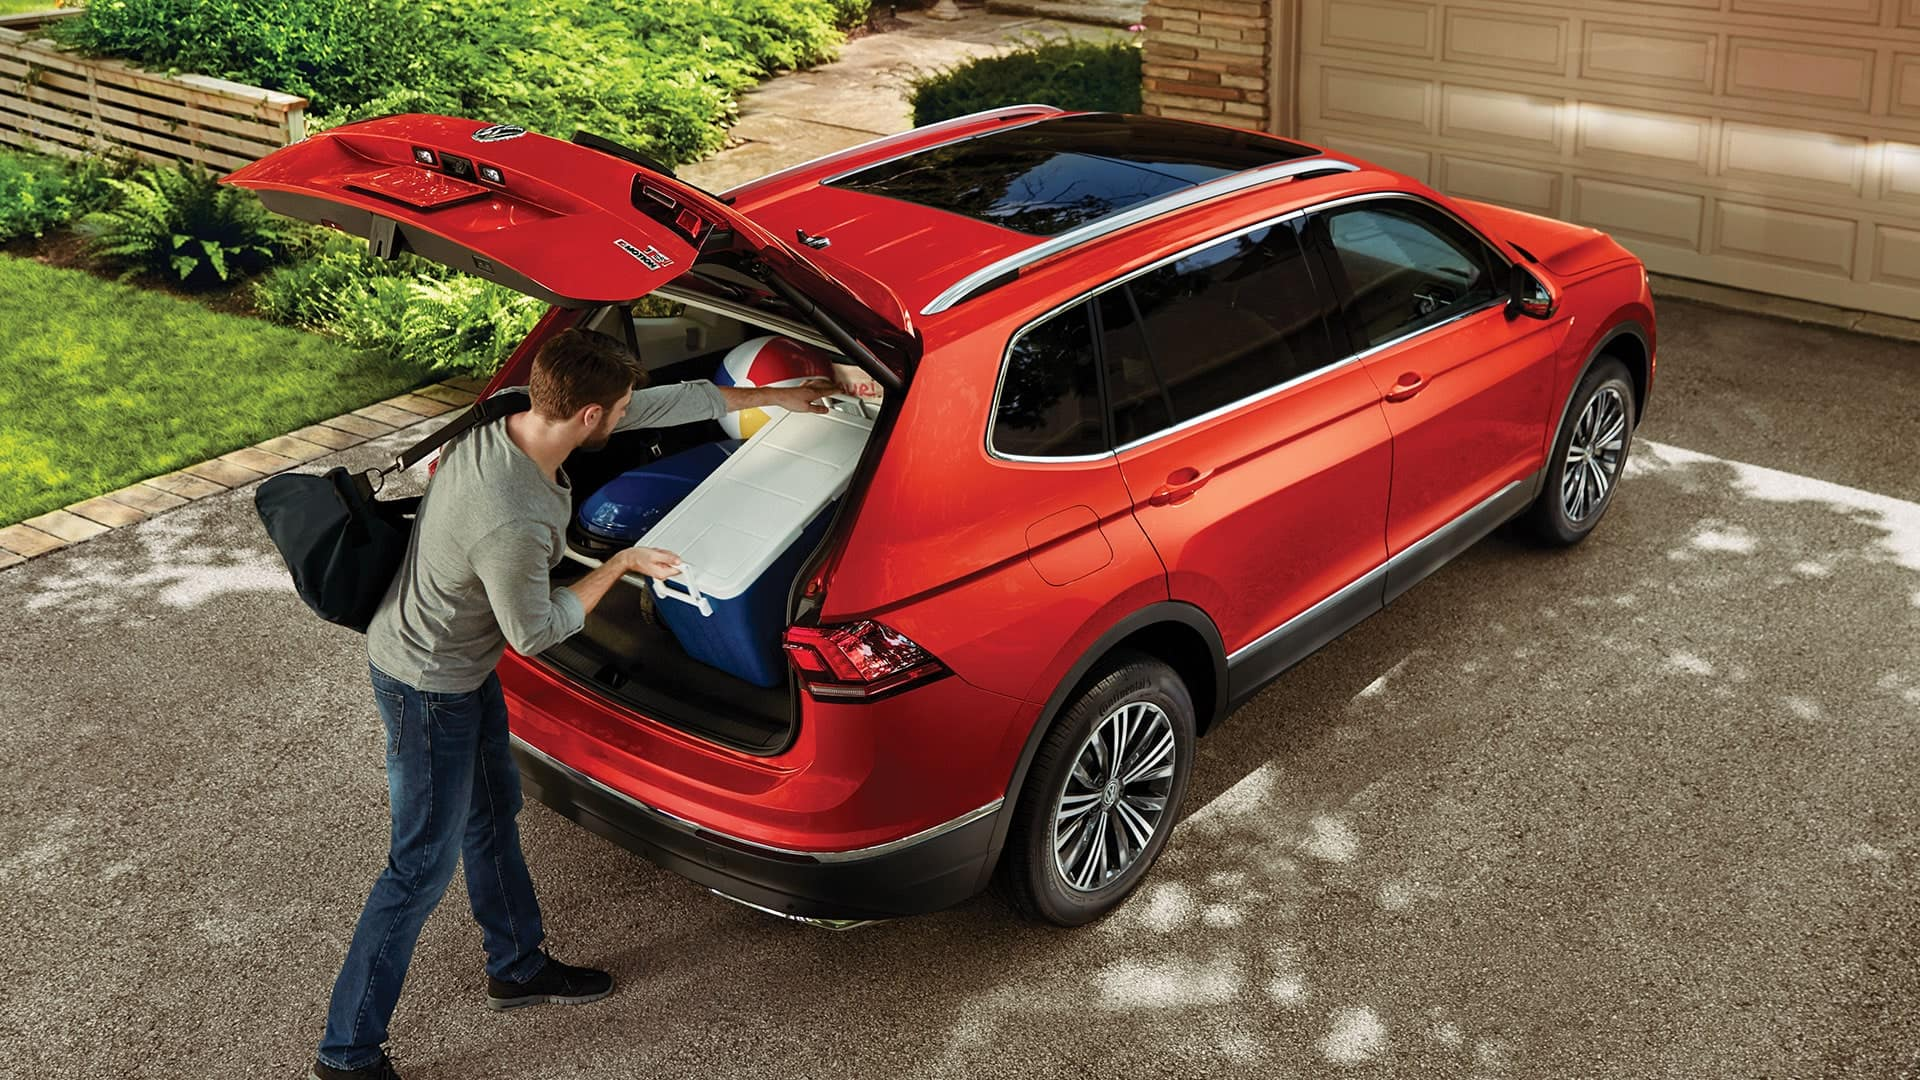 Man takes advantage of the spacious interior of the Tiguan to pack everything required for a beach barbecue.